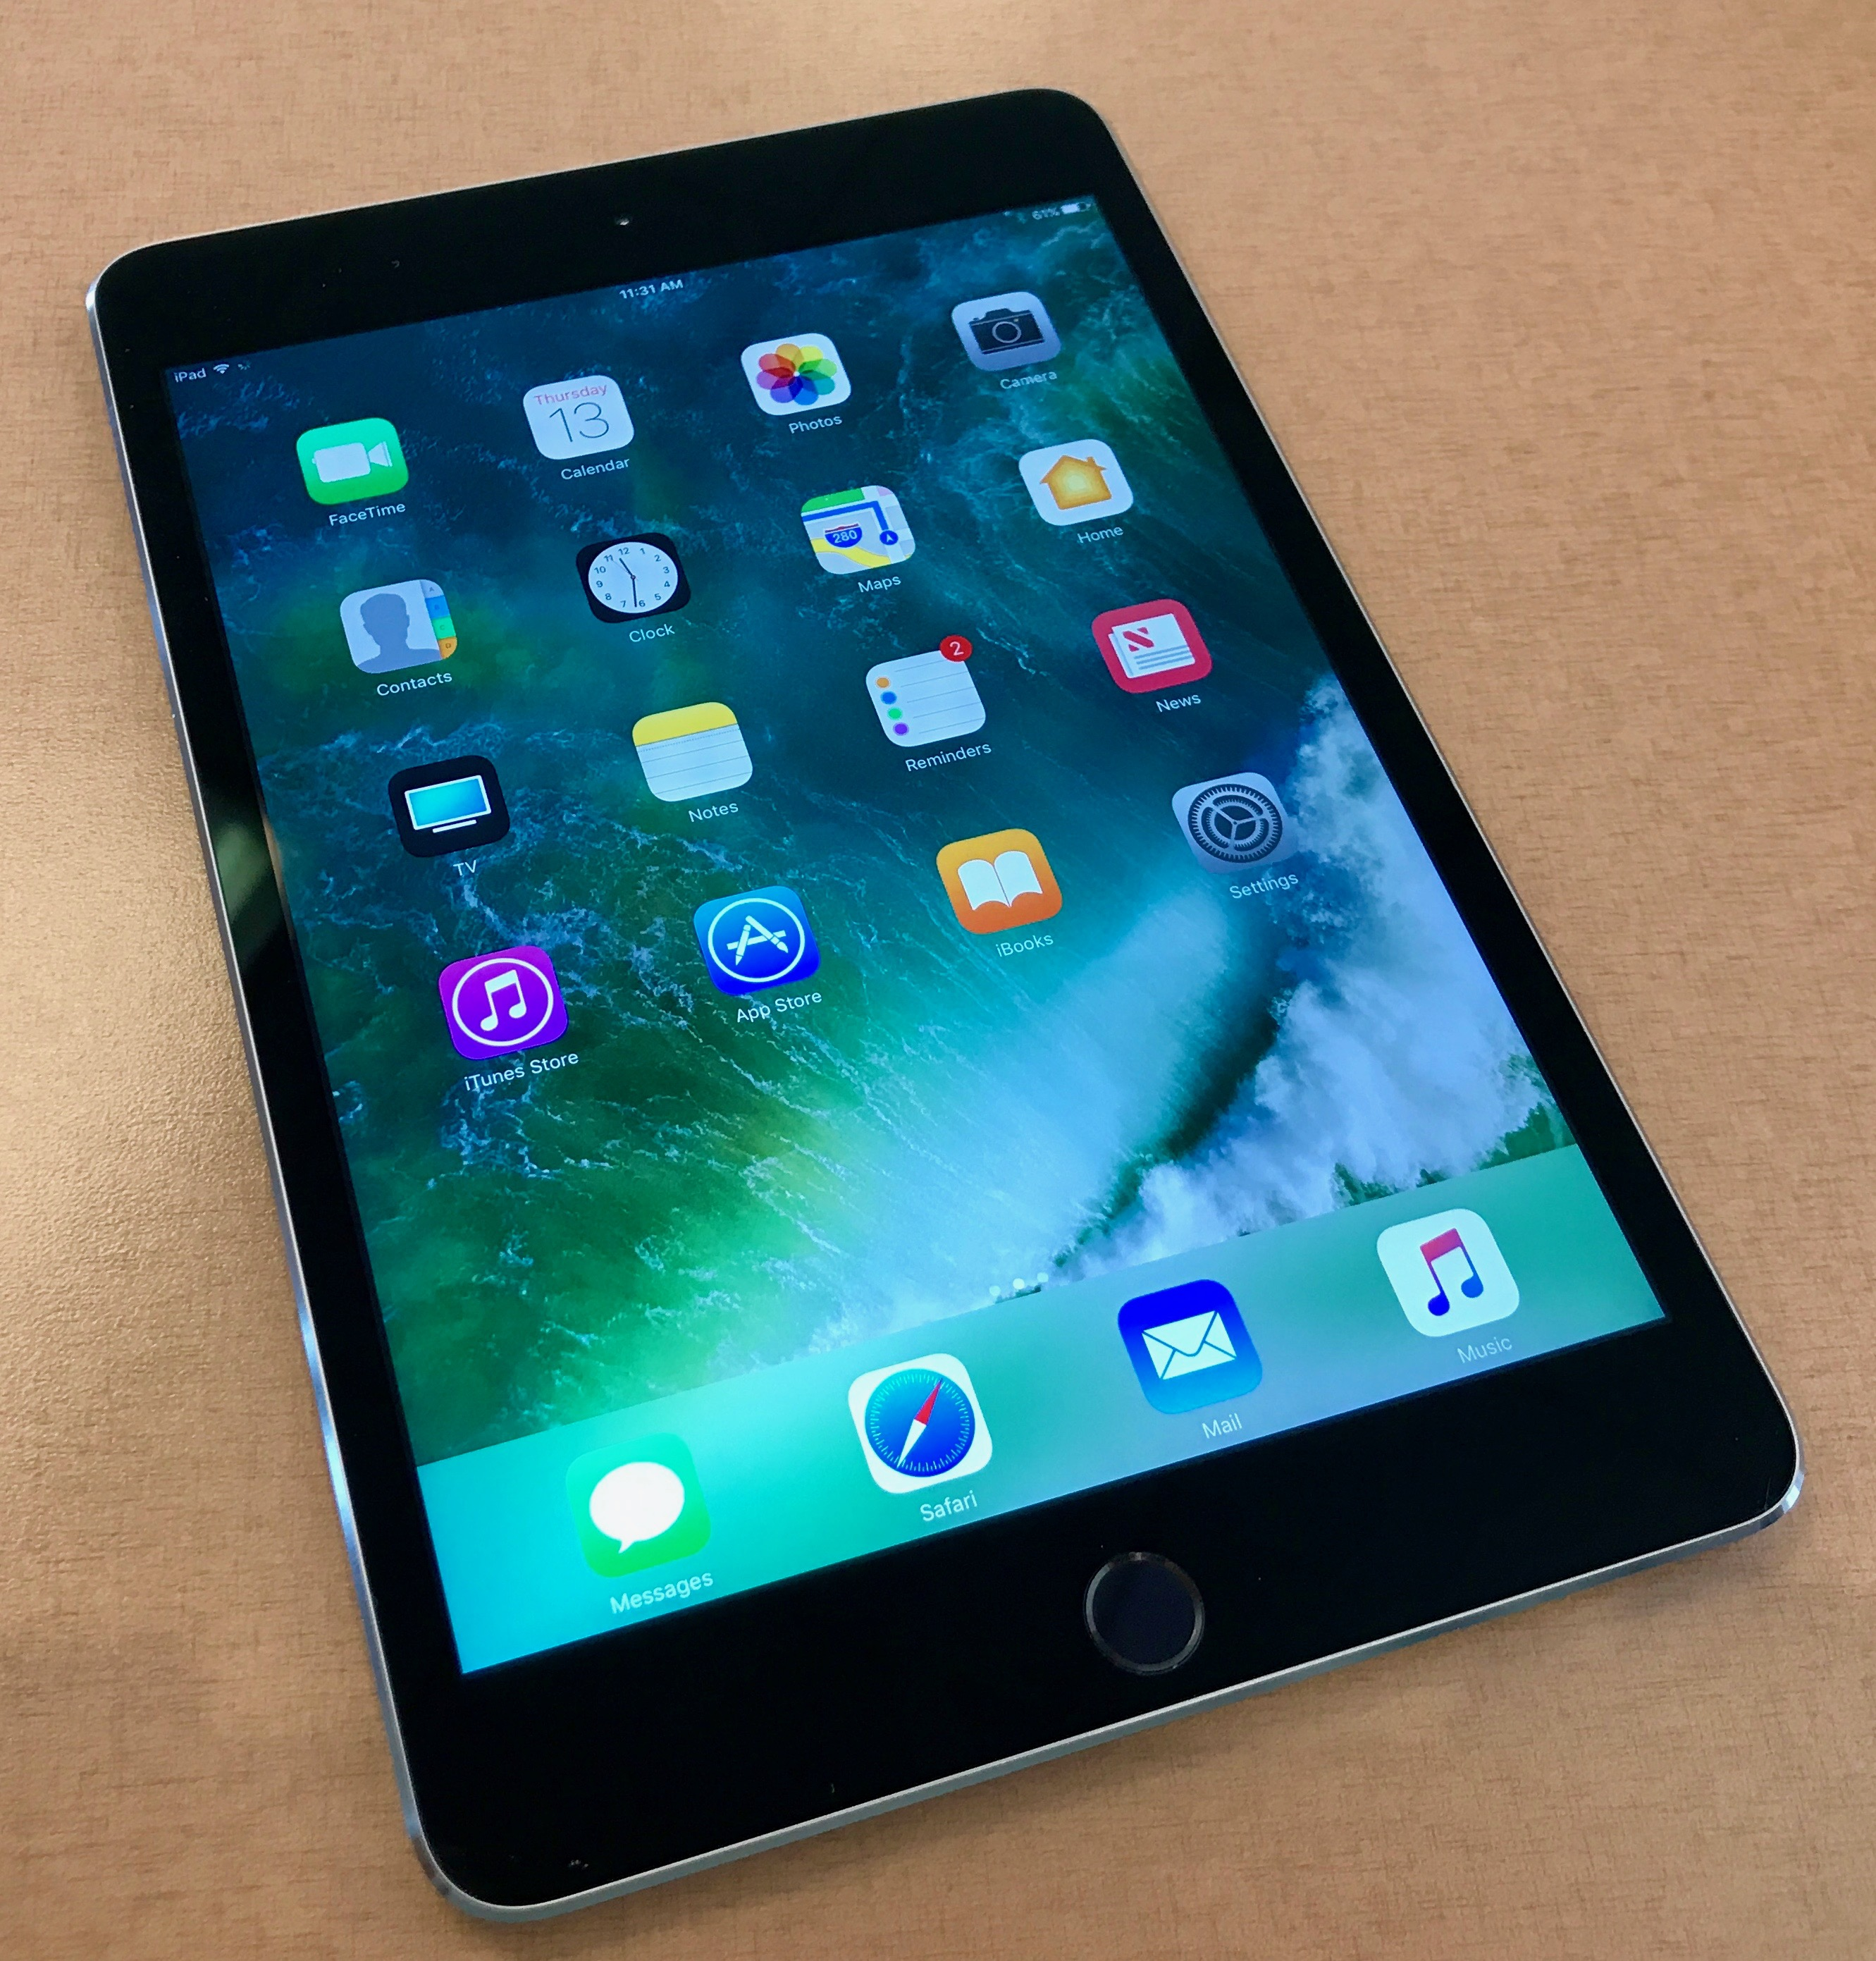 128GB Apple iPad Mini 4 Review: New Lower Price